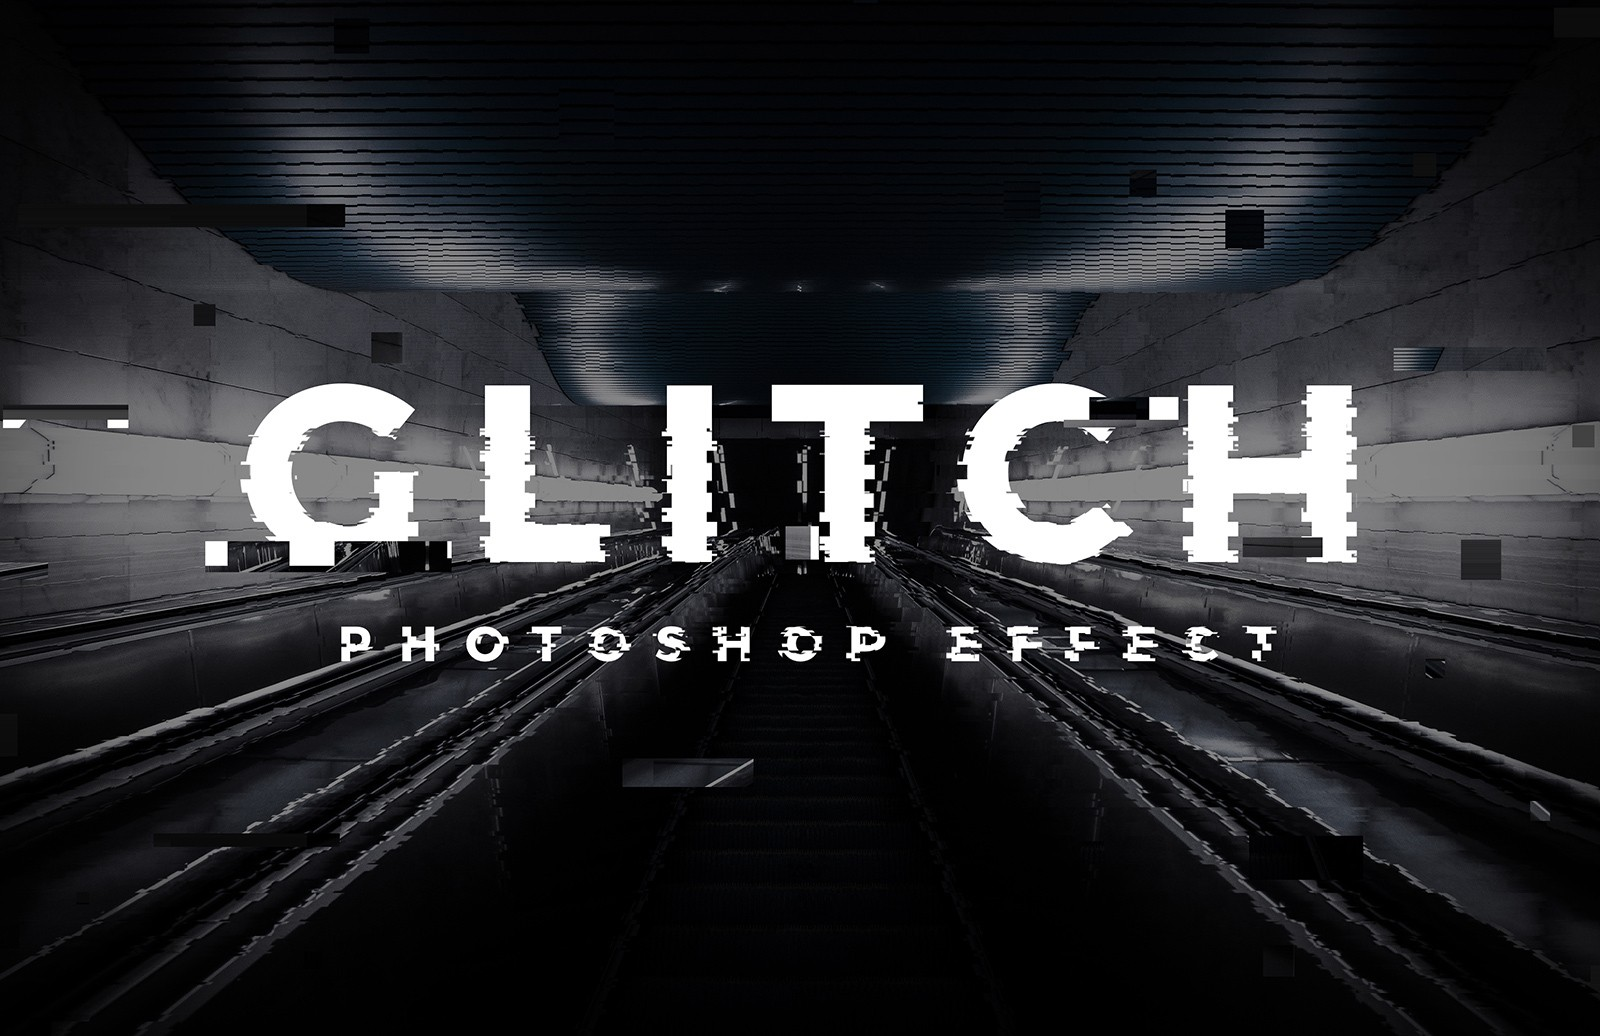 Glitch Image Effect Generator 2 Preview 1